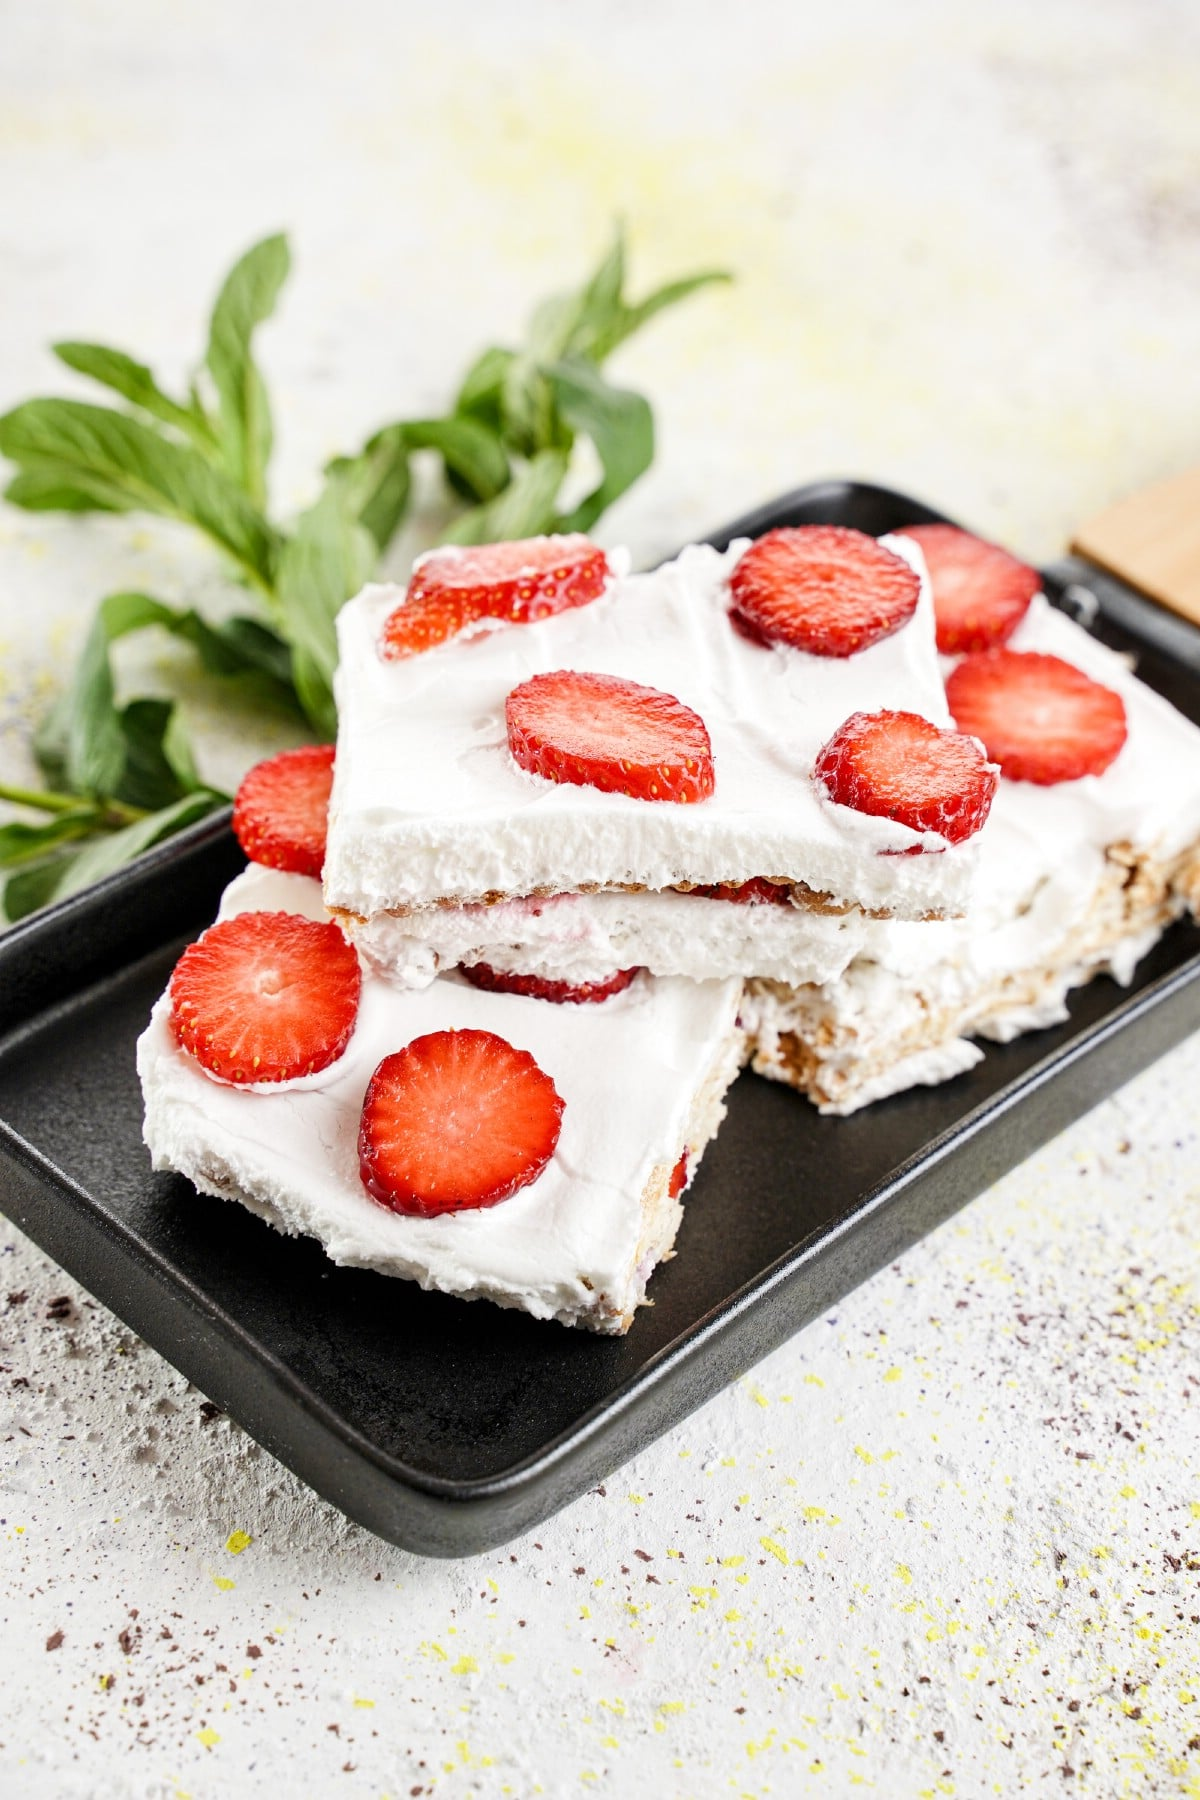 Slices of icebox cake stacked on black platter with mint sprigs in background